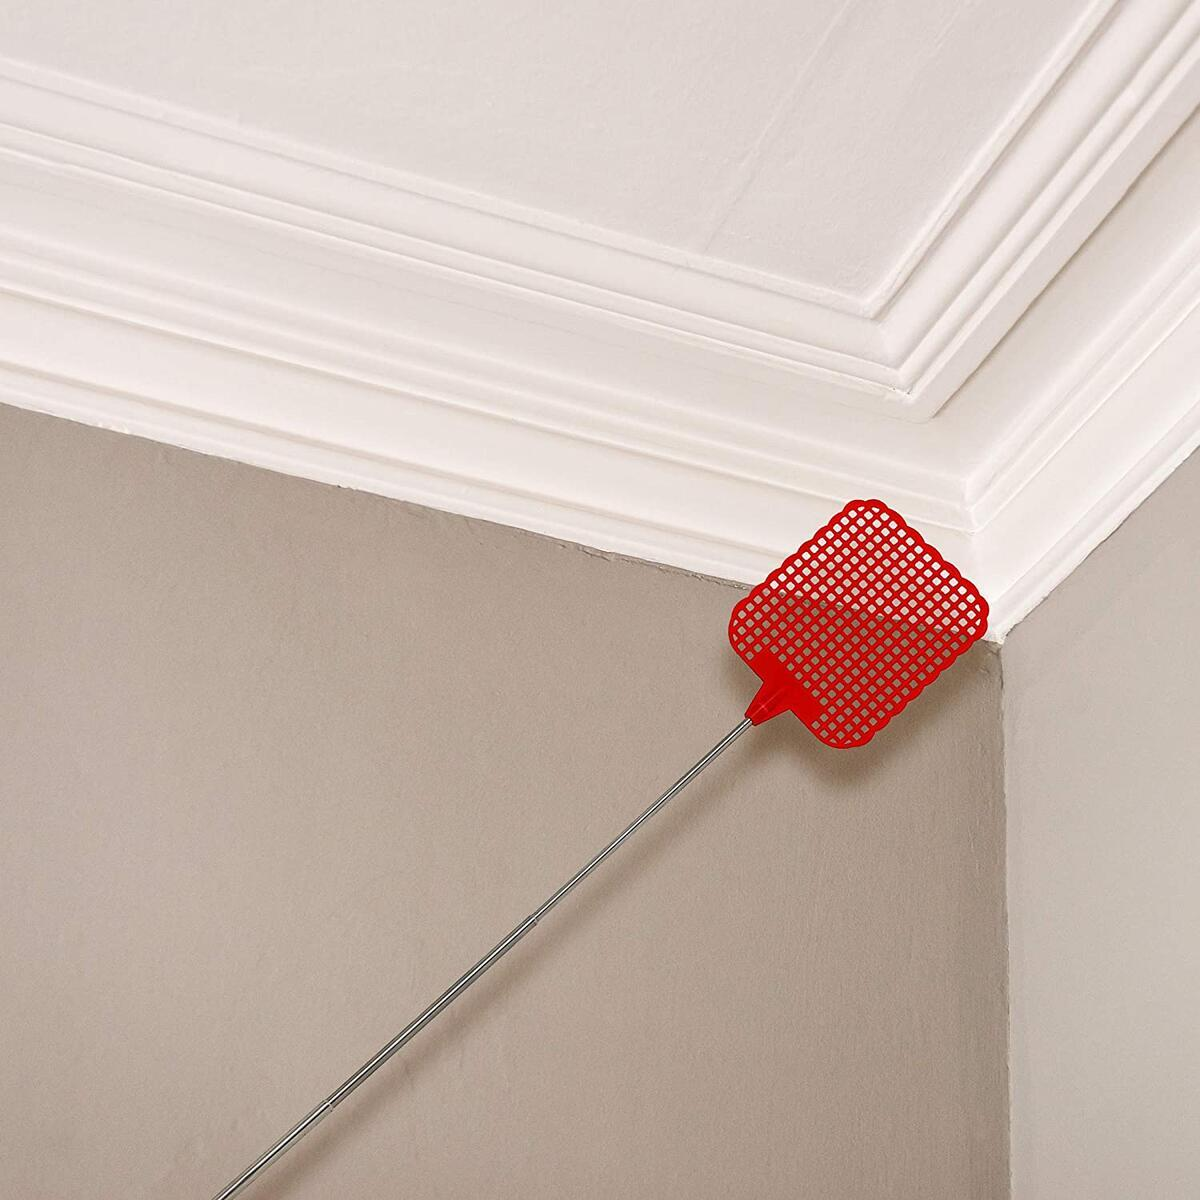 Catchmaster Extra-Long Bug and Fly Swatter - Compact Heavy Duty Metal and Extendable Up to 28 Inches - 3.25